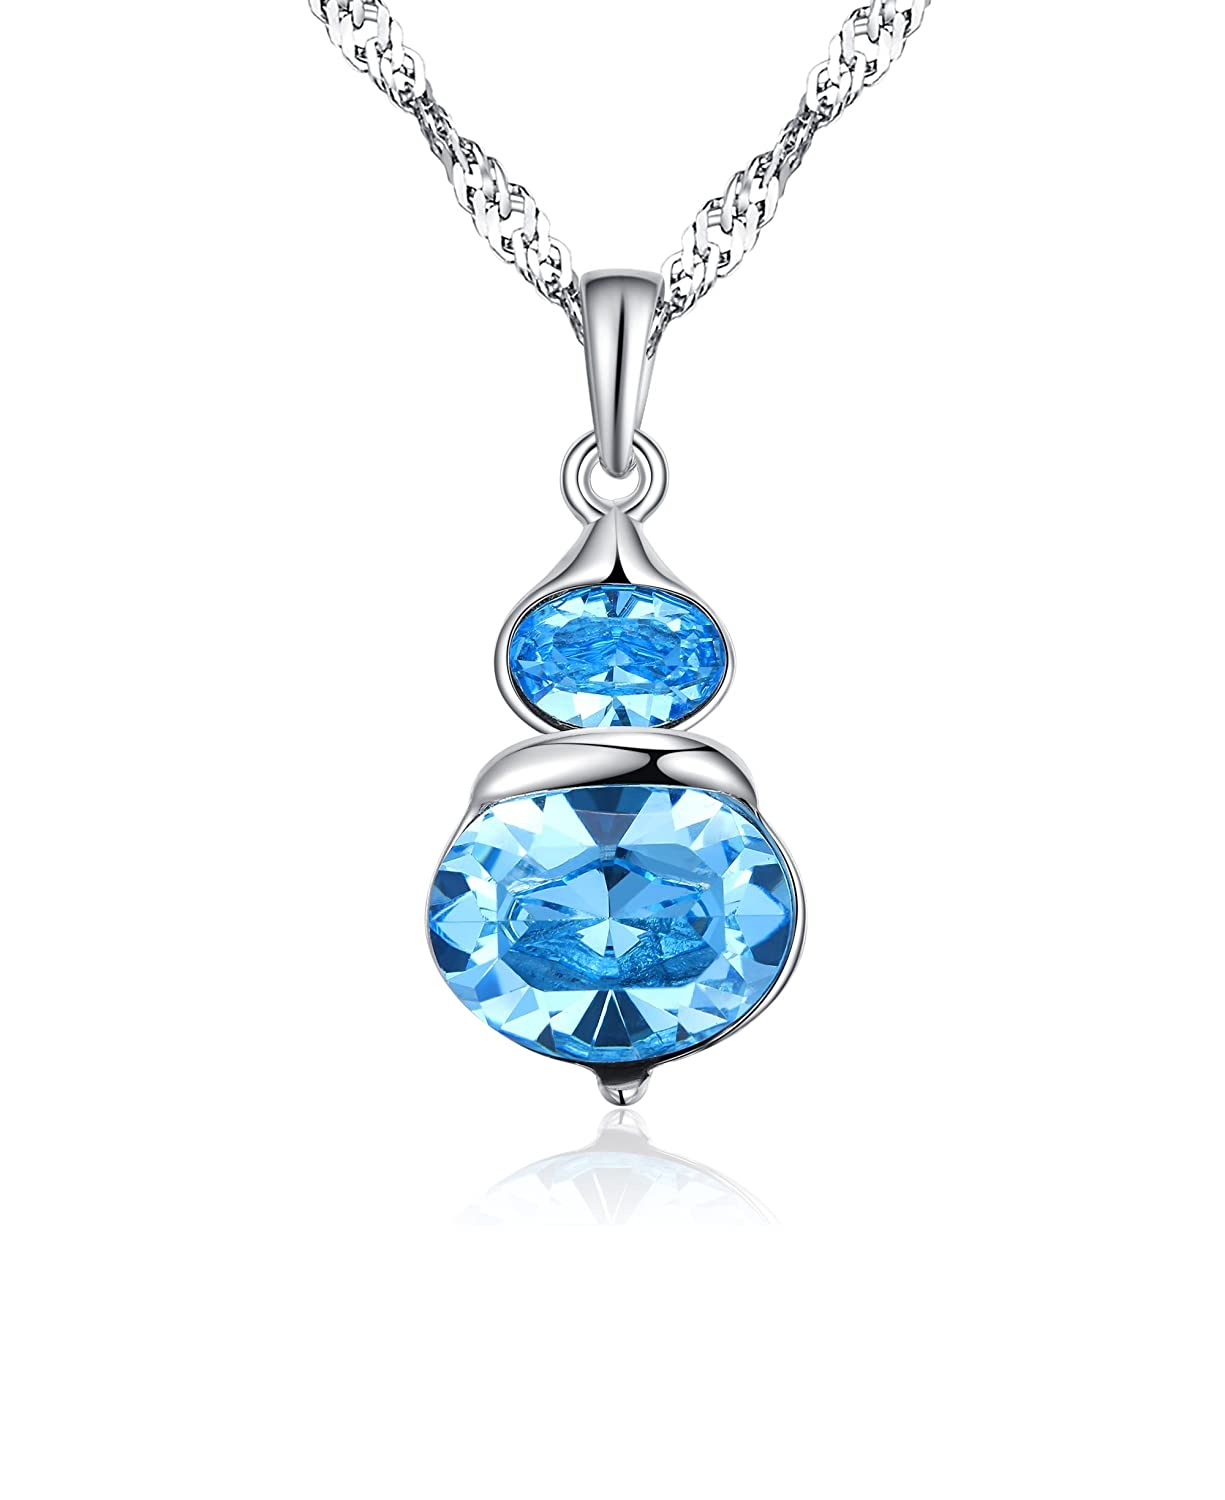 0a9b843c6 Amazon.com: Arieanna S925 Sterling Silver Lucky Gourd Blue Swarovski  Element Crystal Pendant Necklace for Women: Jewelry